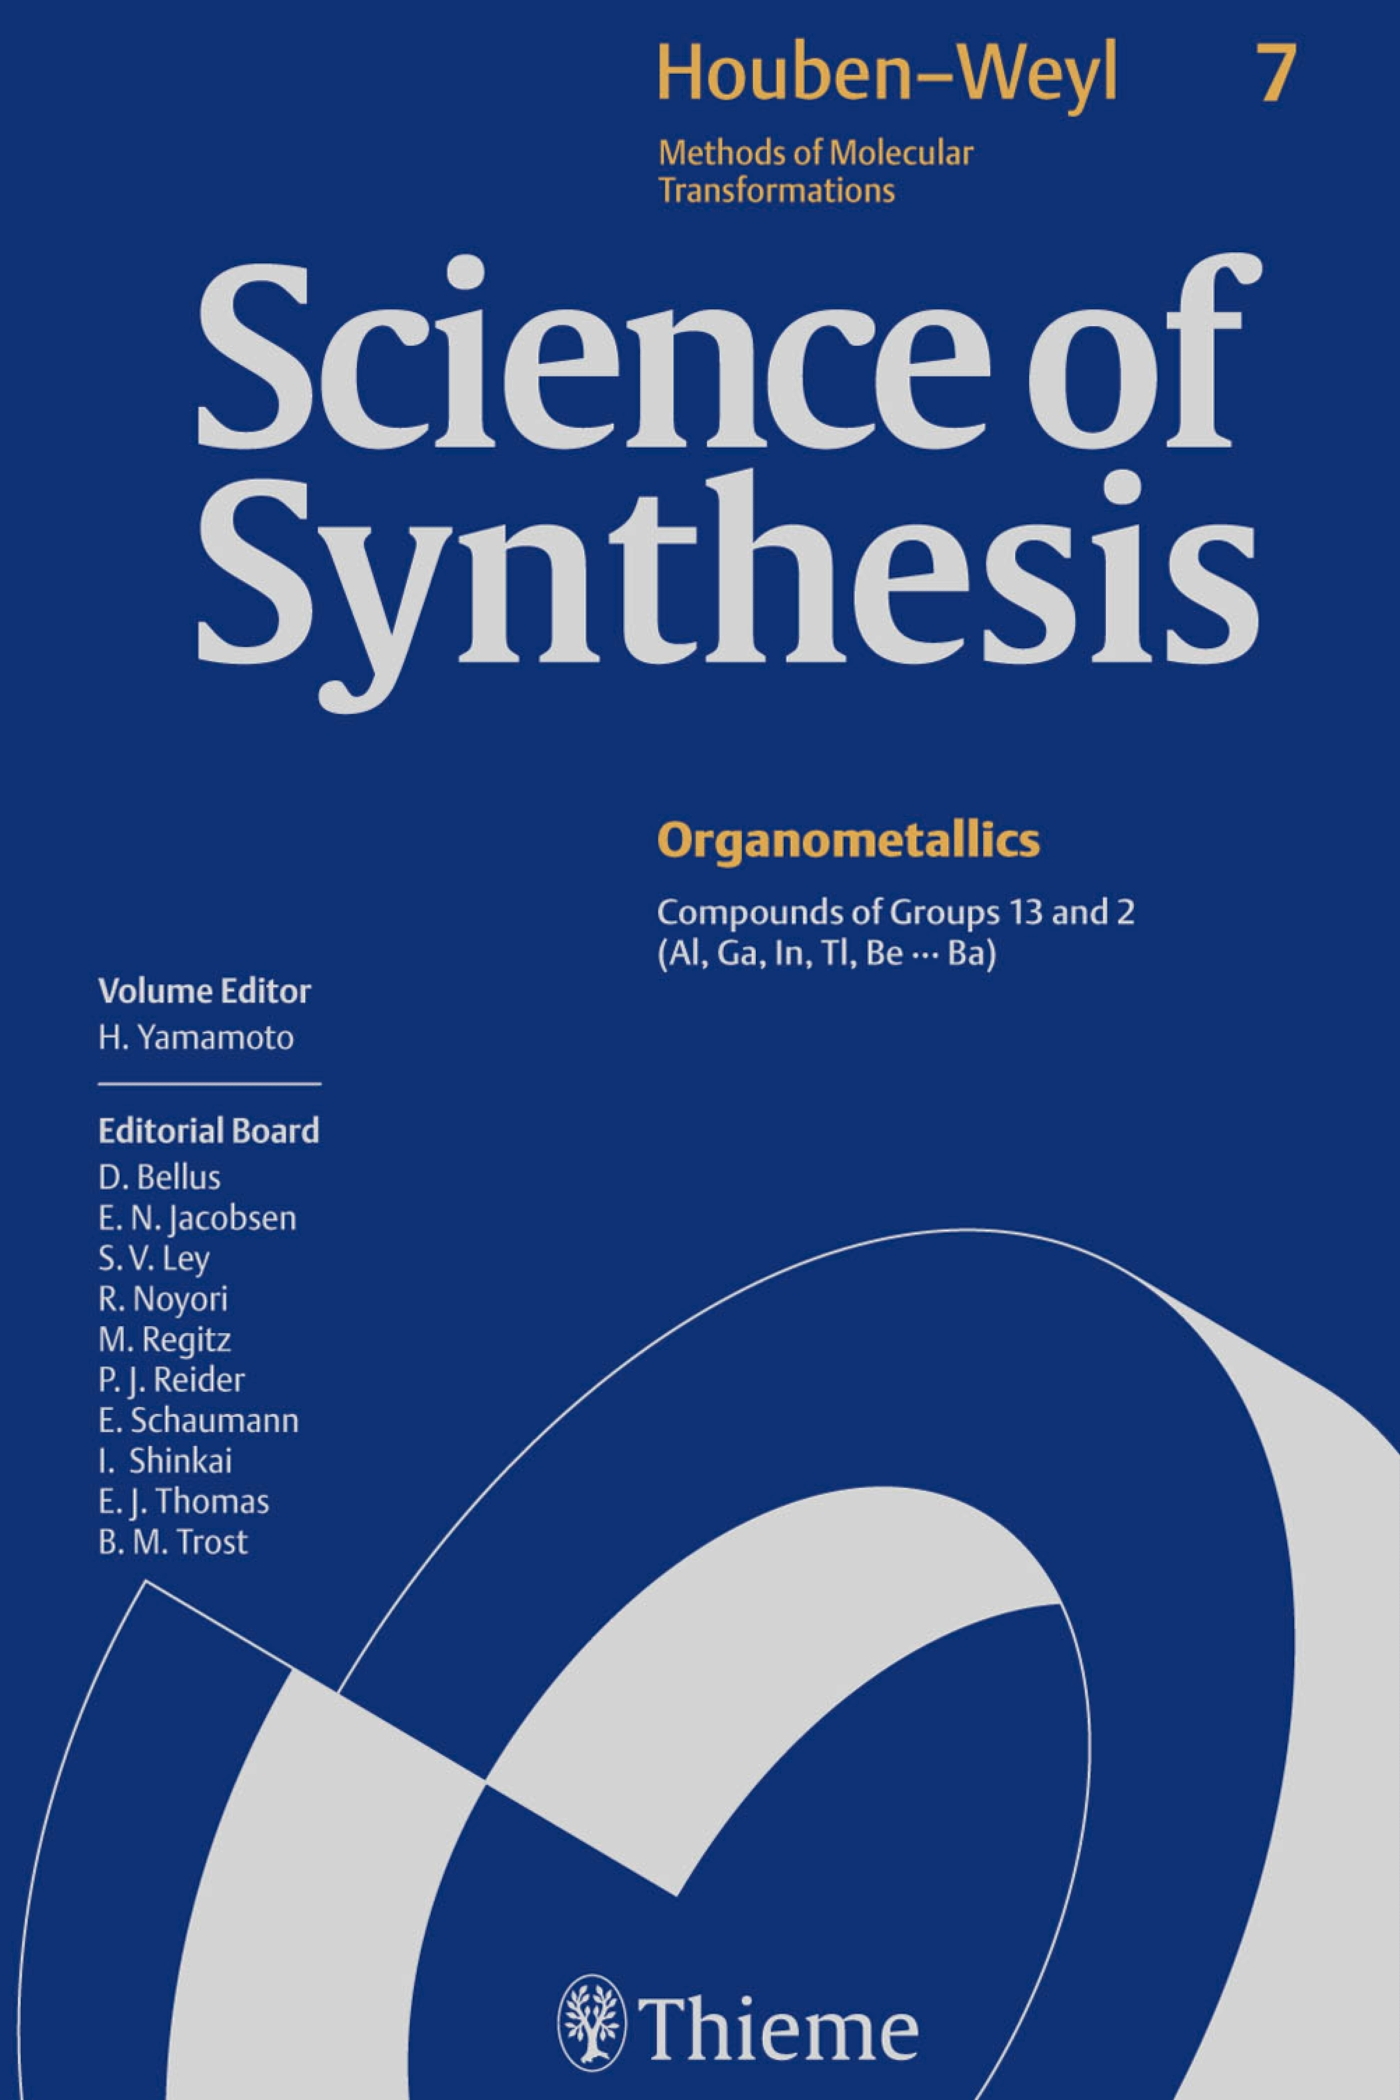 Science of Synthesis: Houben-Weyl Methods of Molecular Transformations  Vol. 7